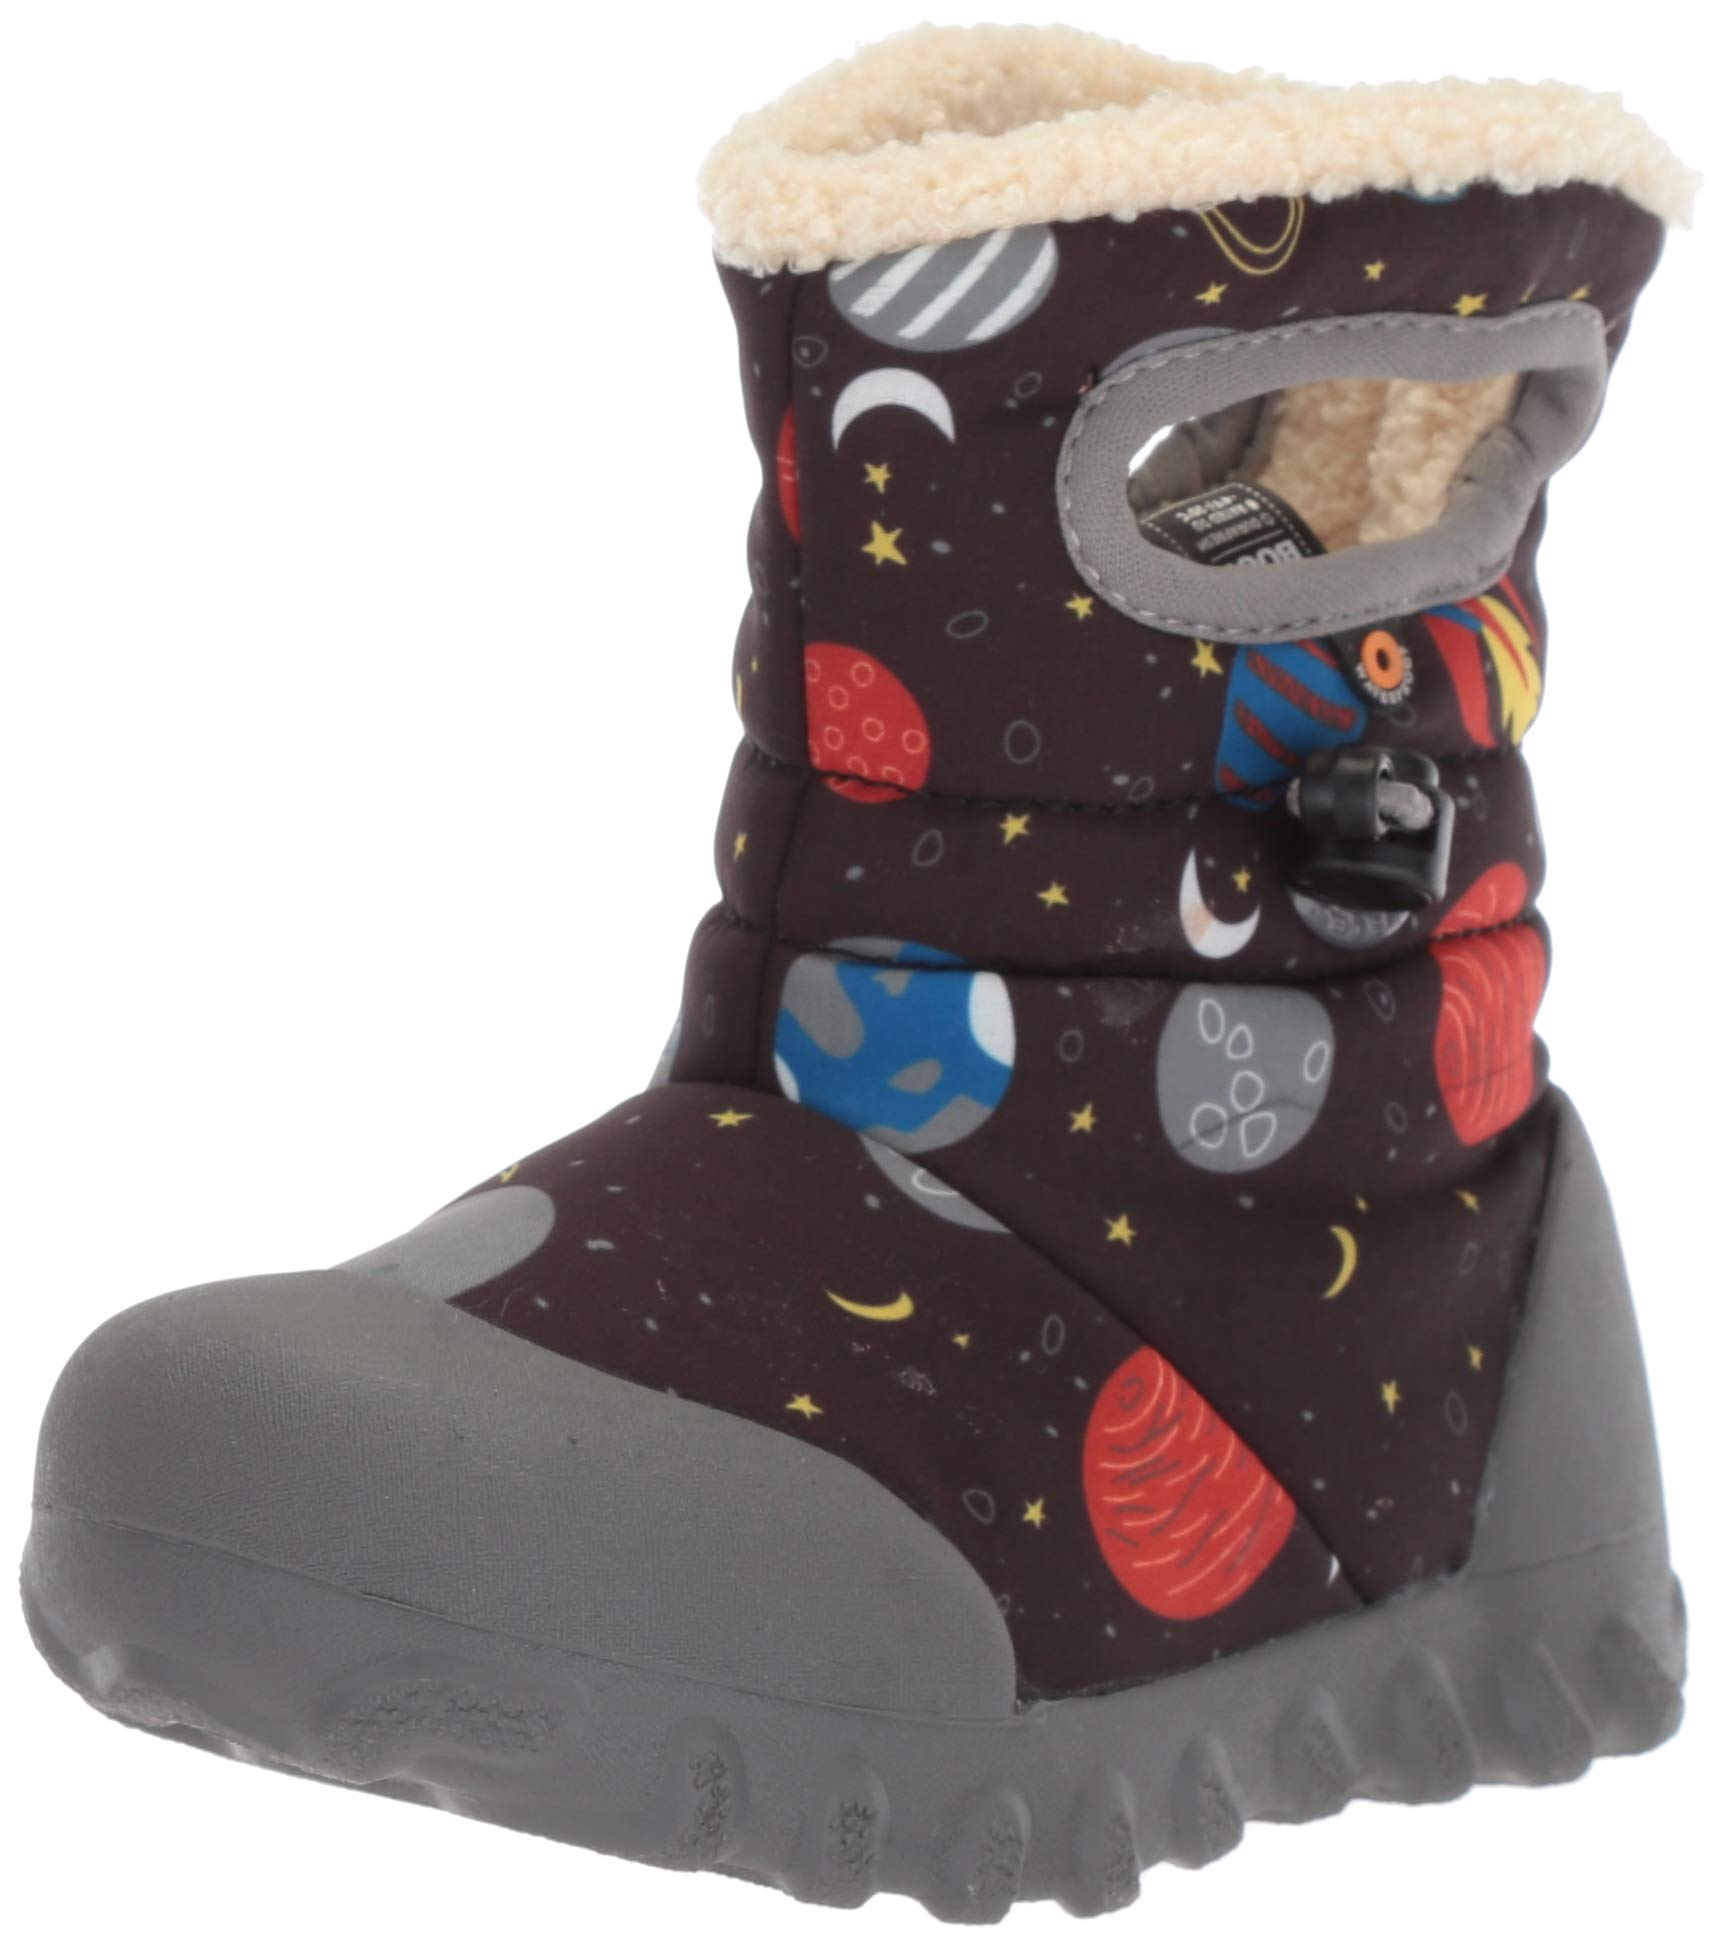 Bogs Baby B-Moc Waterproof Insulated Kids/Toddler Winter Boot Space Print/Black/Multi 7 M US